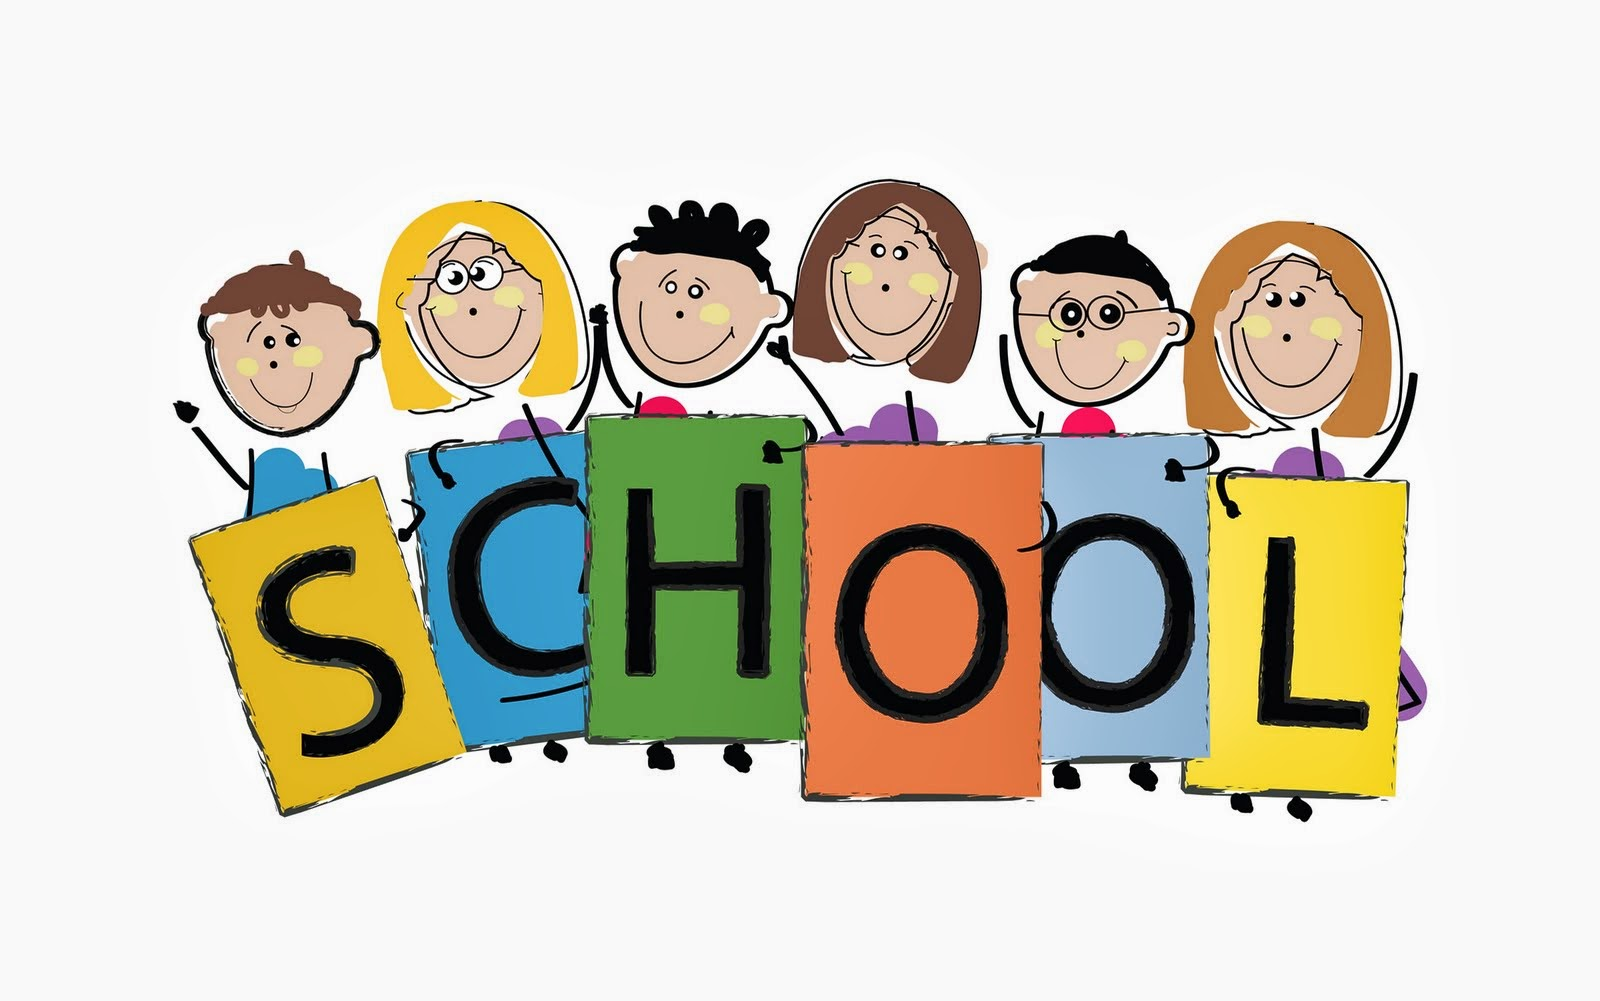 Pictures For School Children - Clipart library